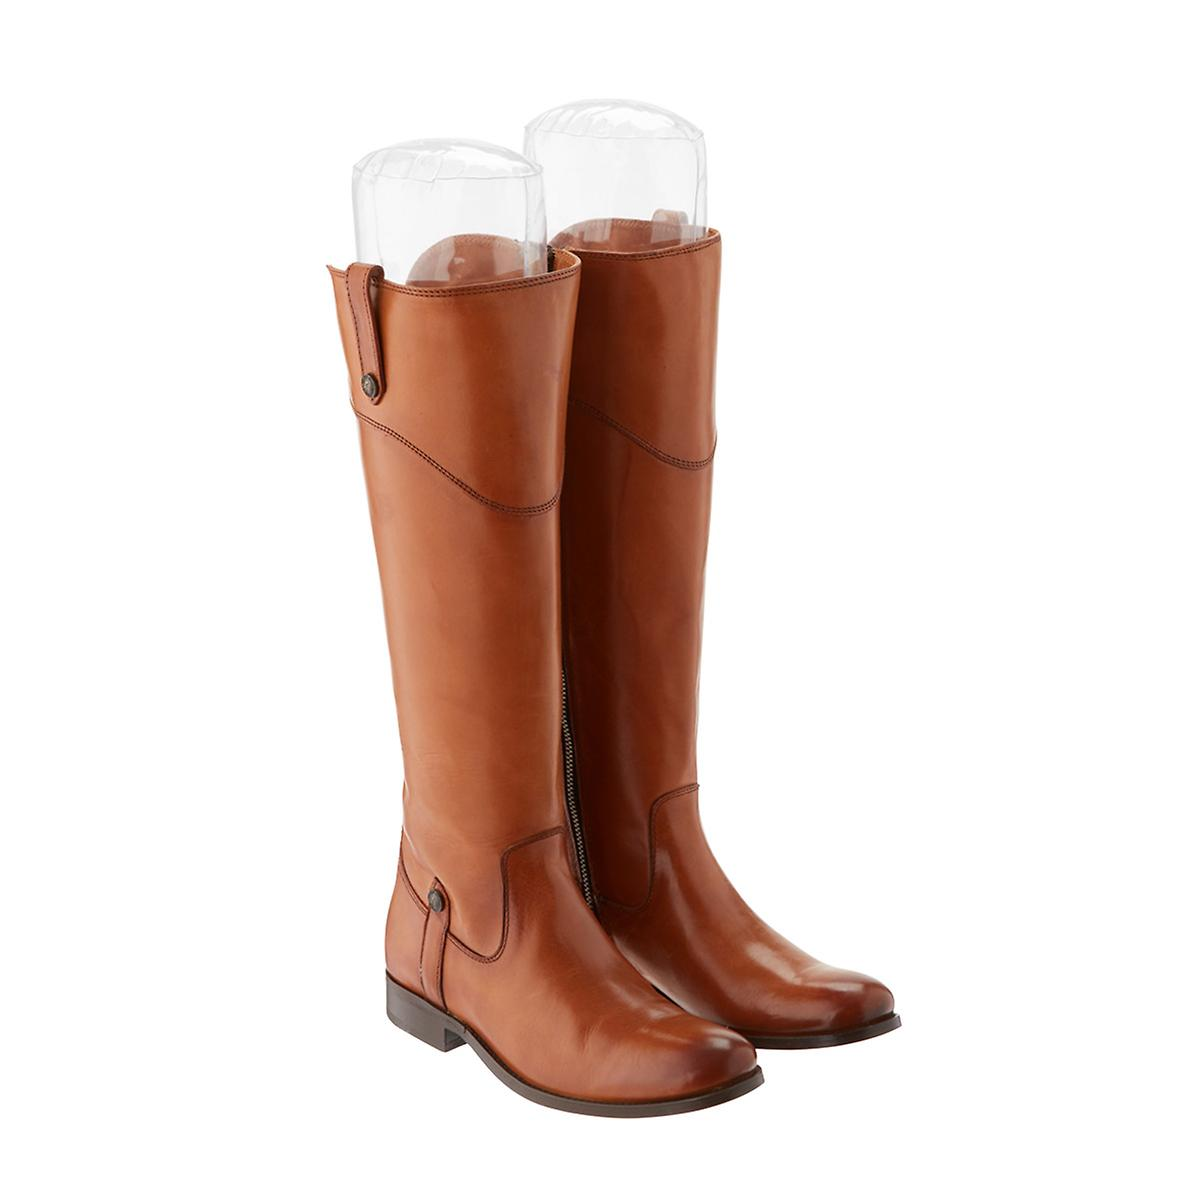 9662462e0 Clear Inflatable Boot Shapers | The Container Store